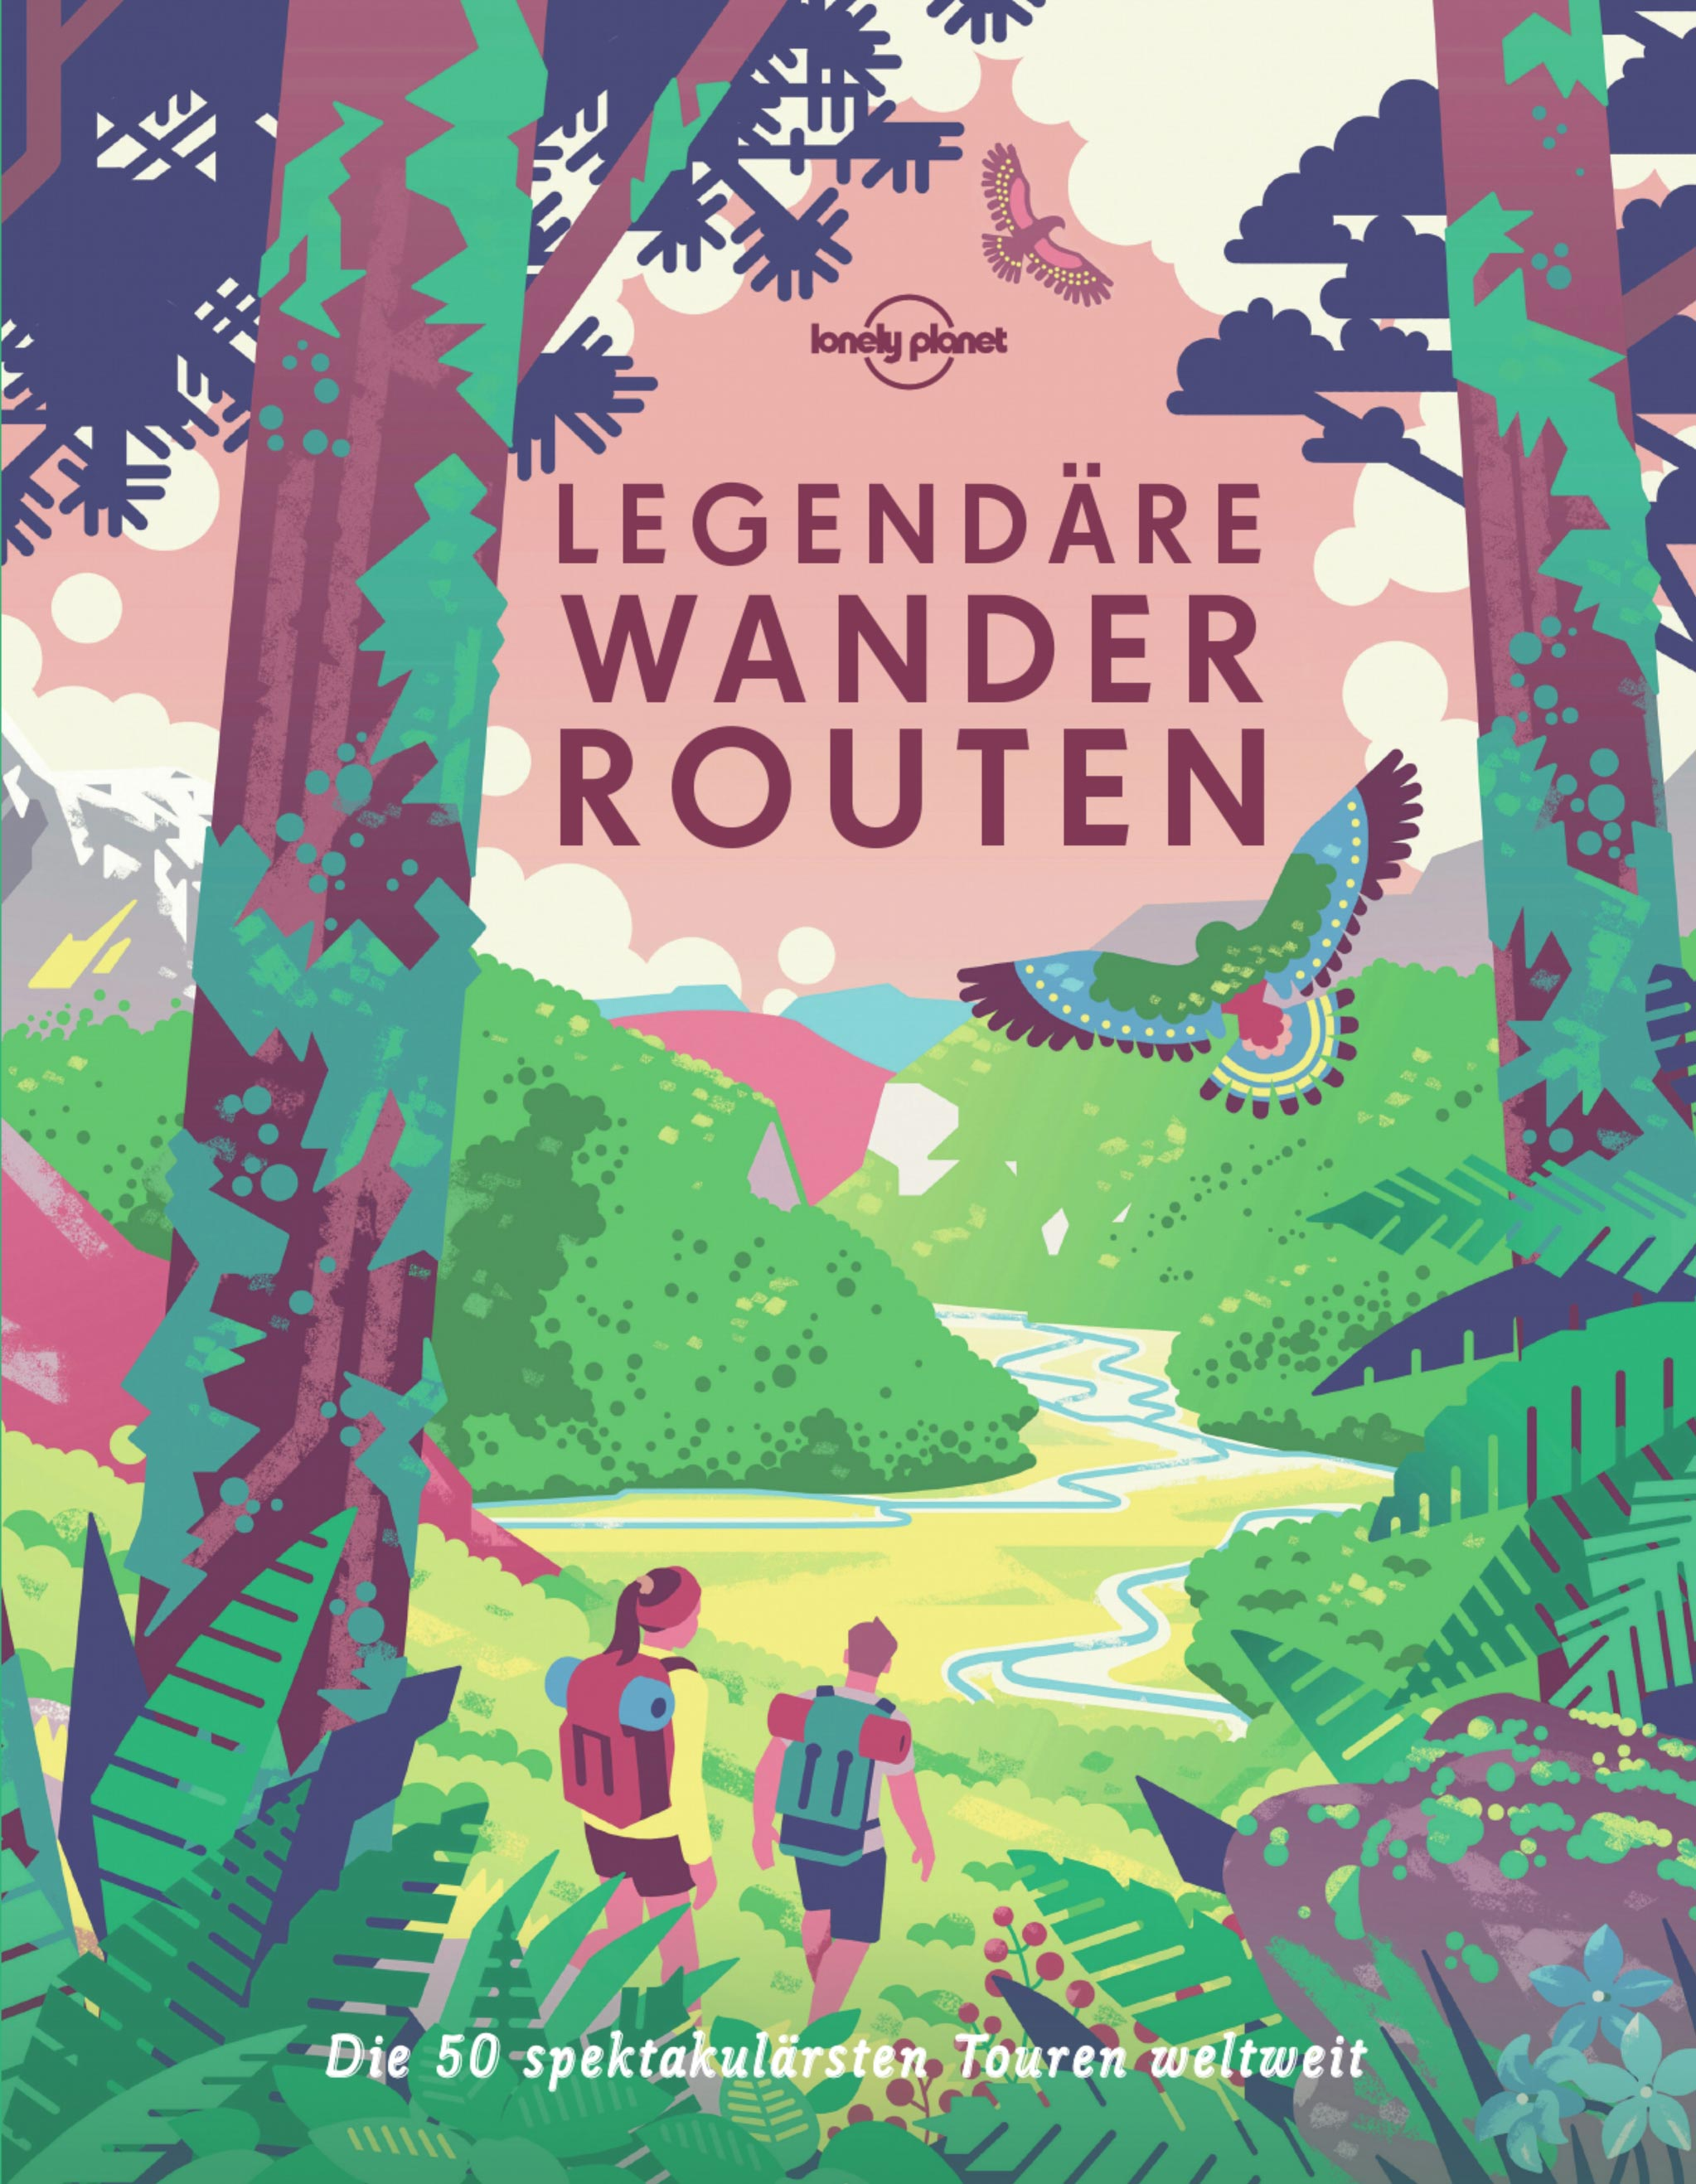 Legendäre Wanderrouten © Lonely Planet